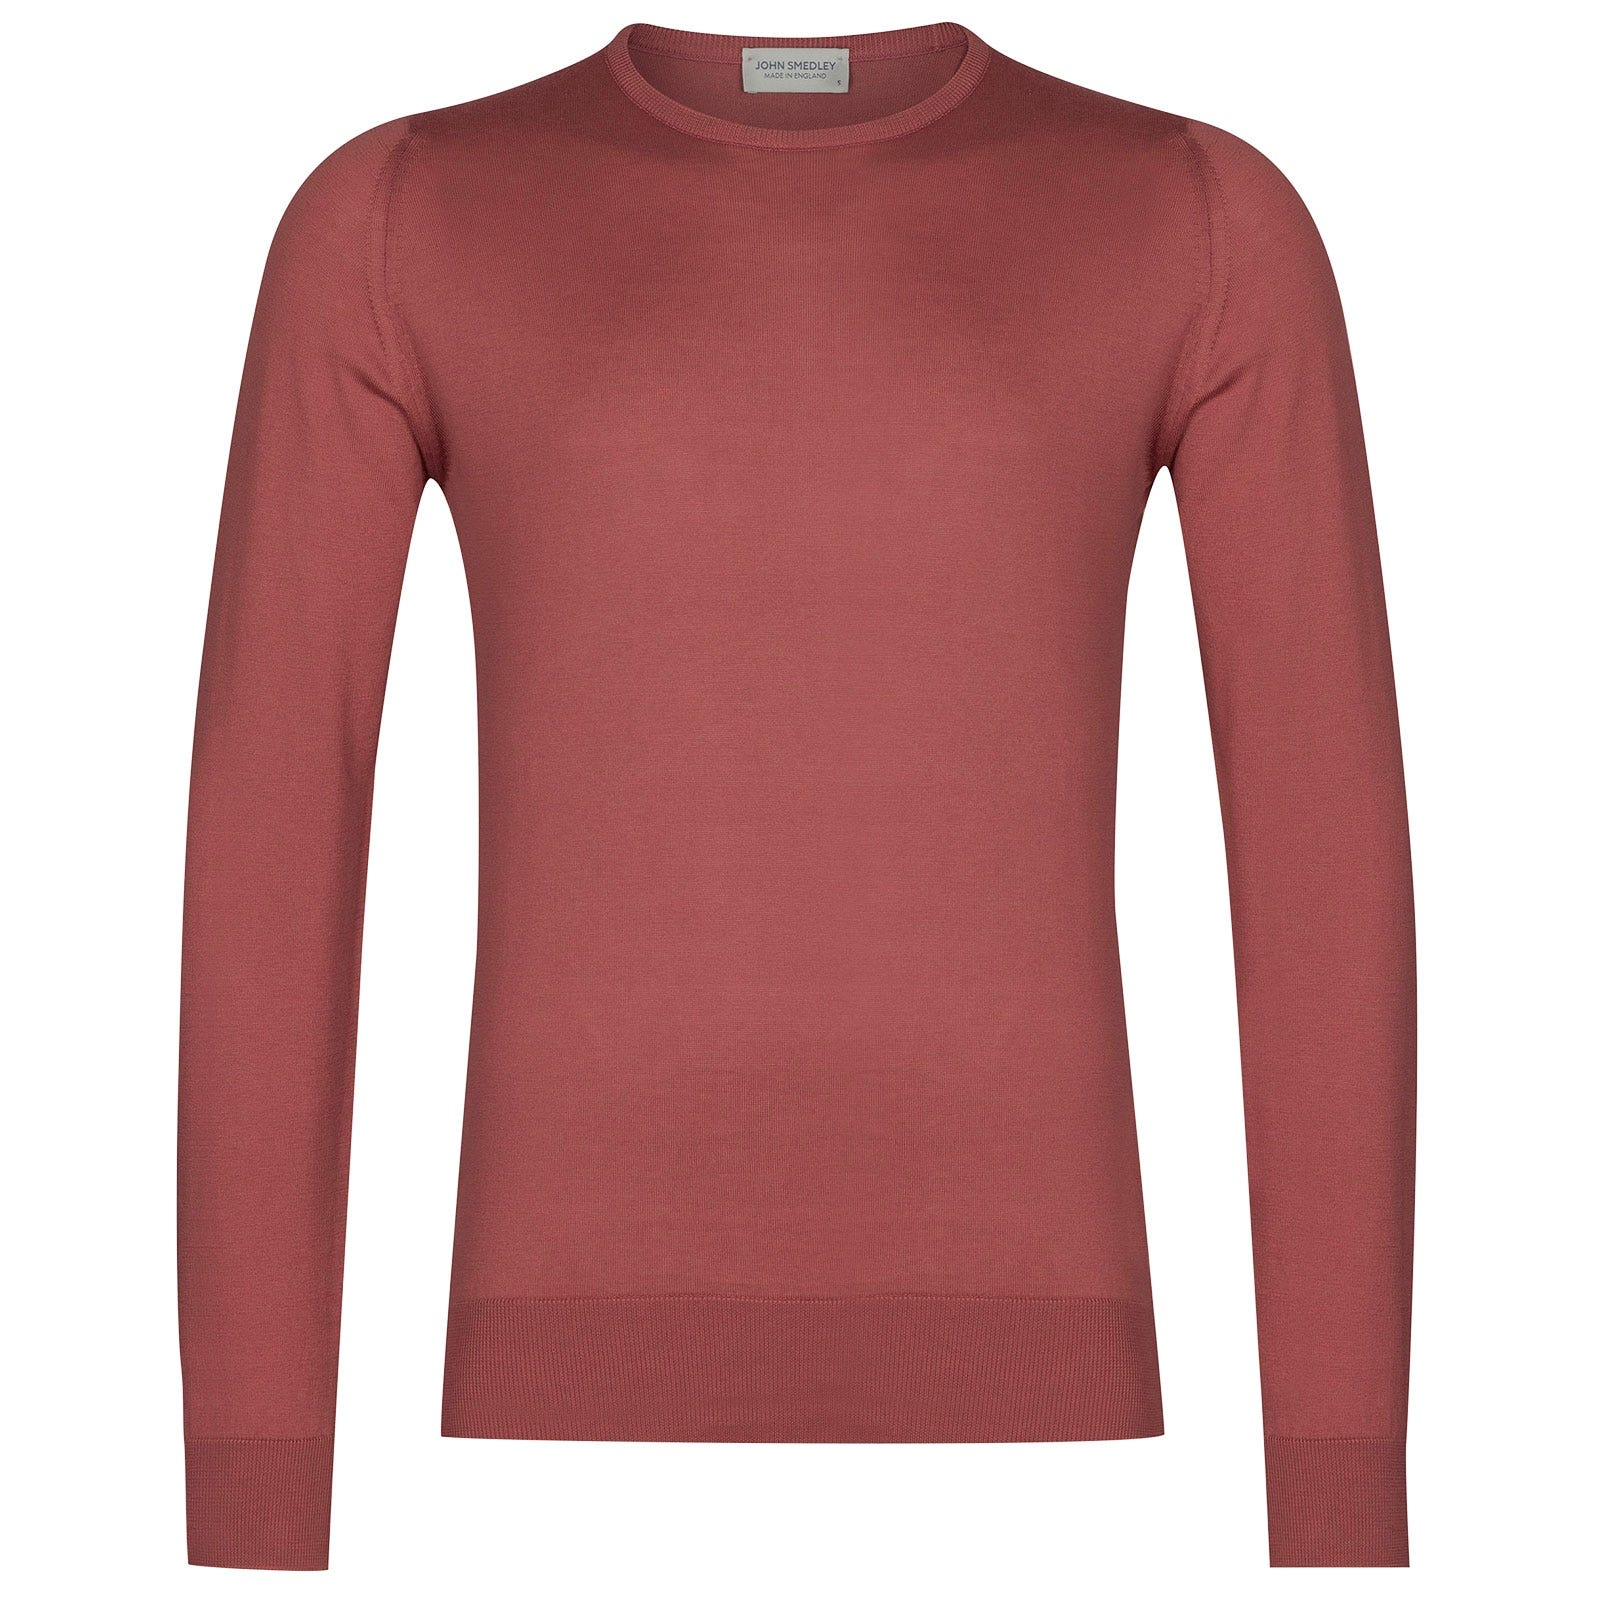 John Smedley hatfield Sea Island Cotton Pullover in Stanton Pink-M